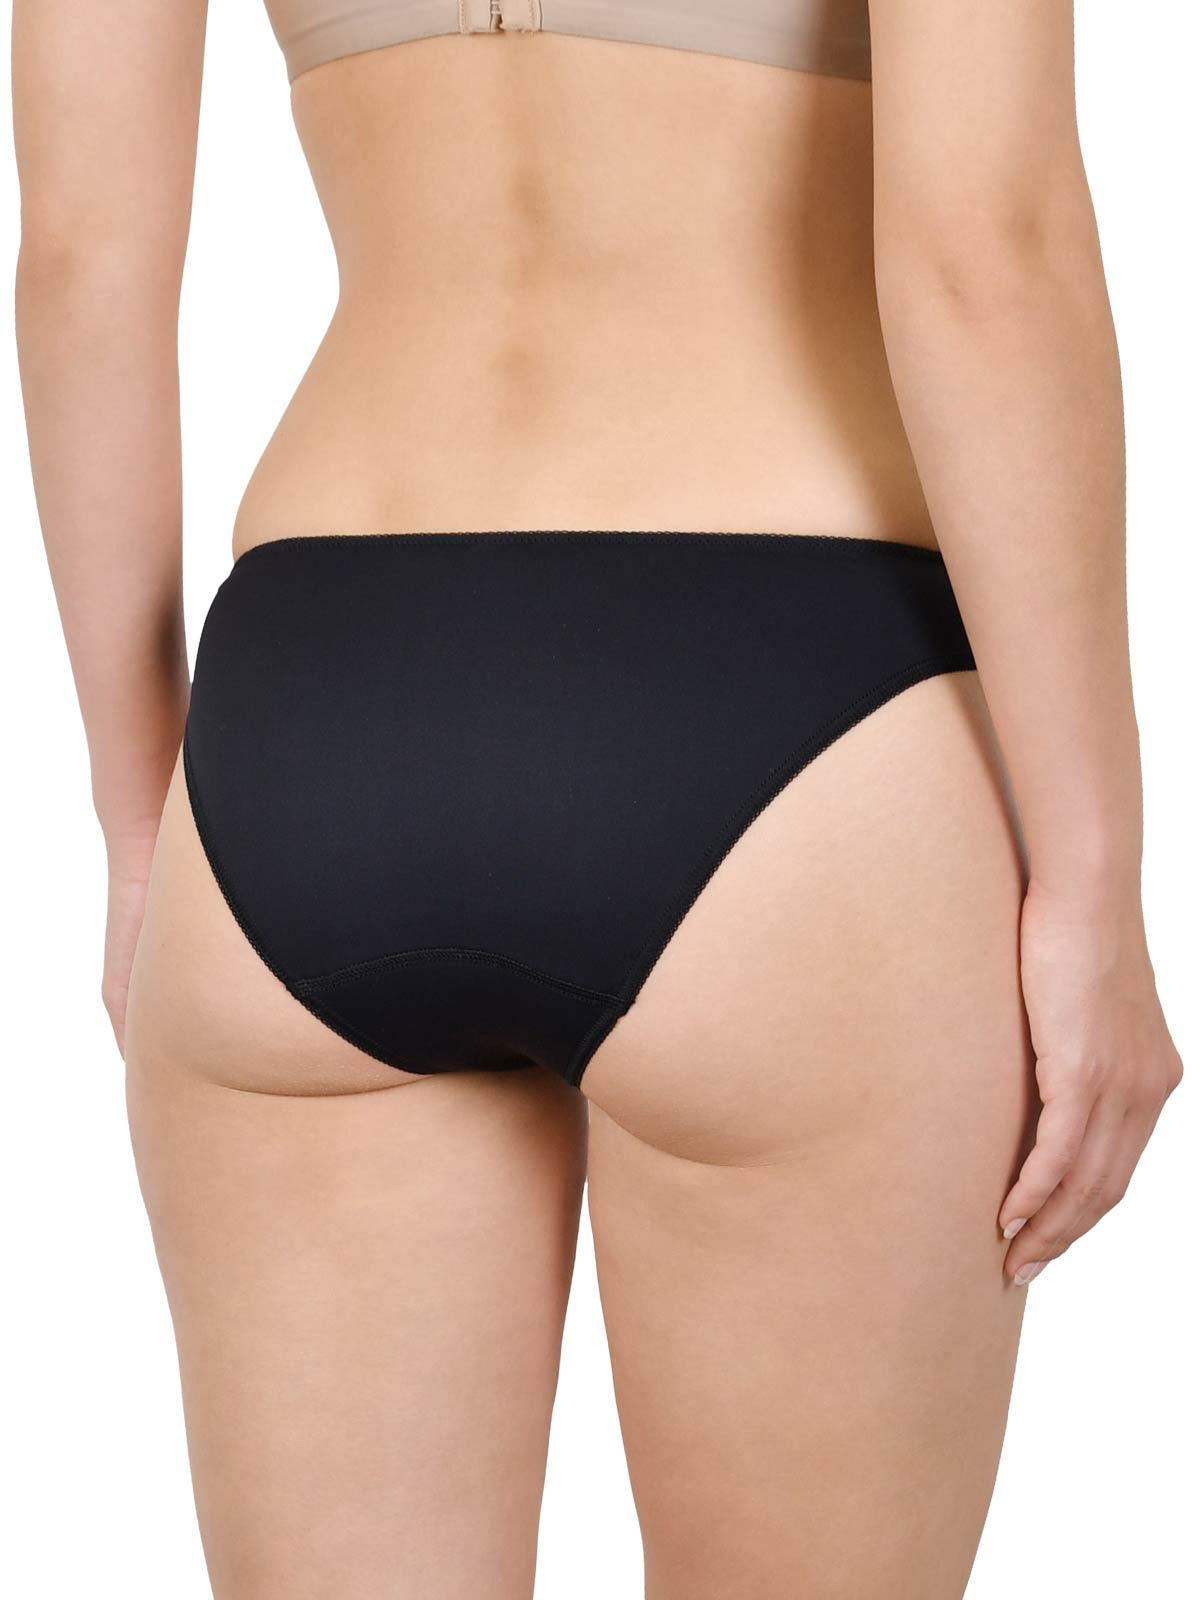 Women's Brief 94104